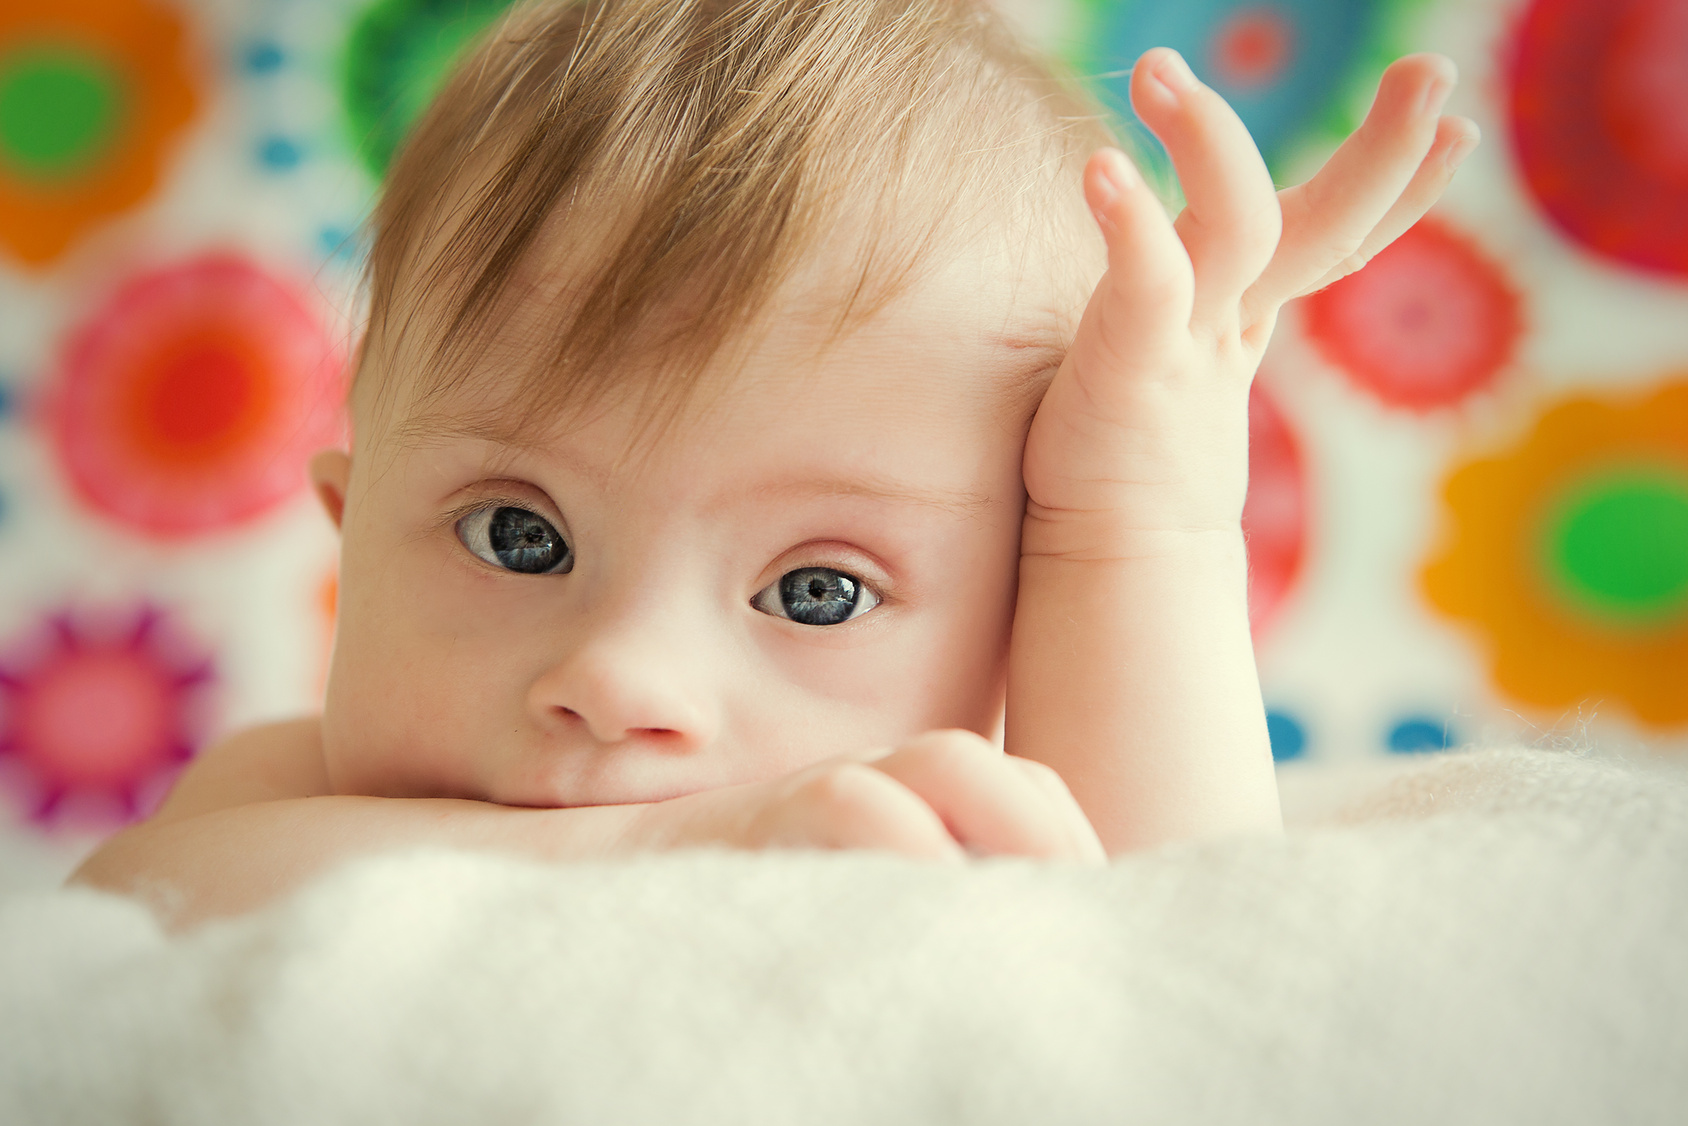 cheerful little baby girl with Downs Syndrome